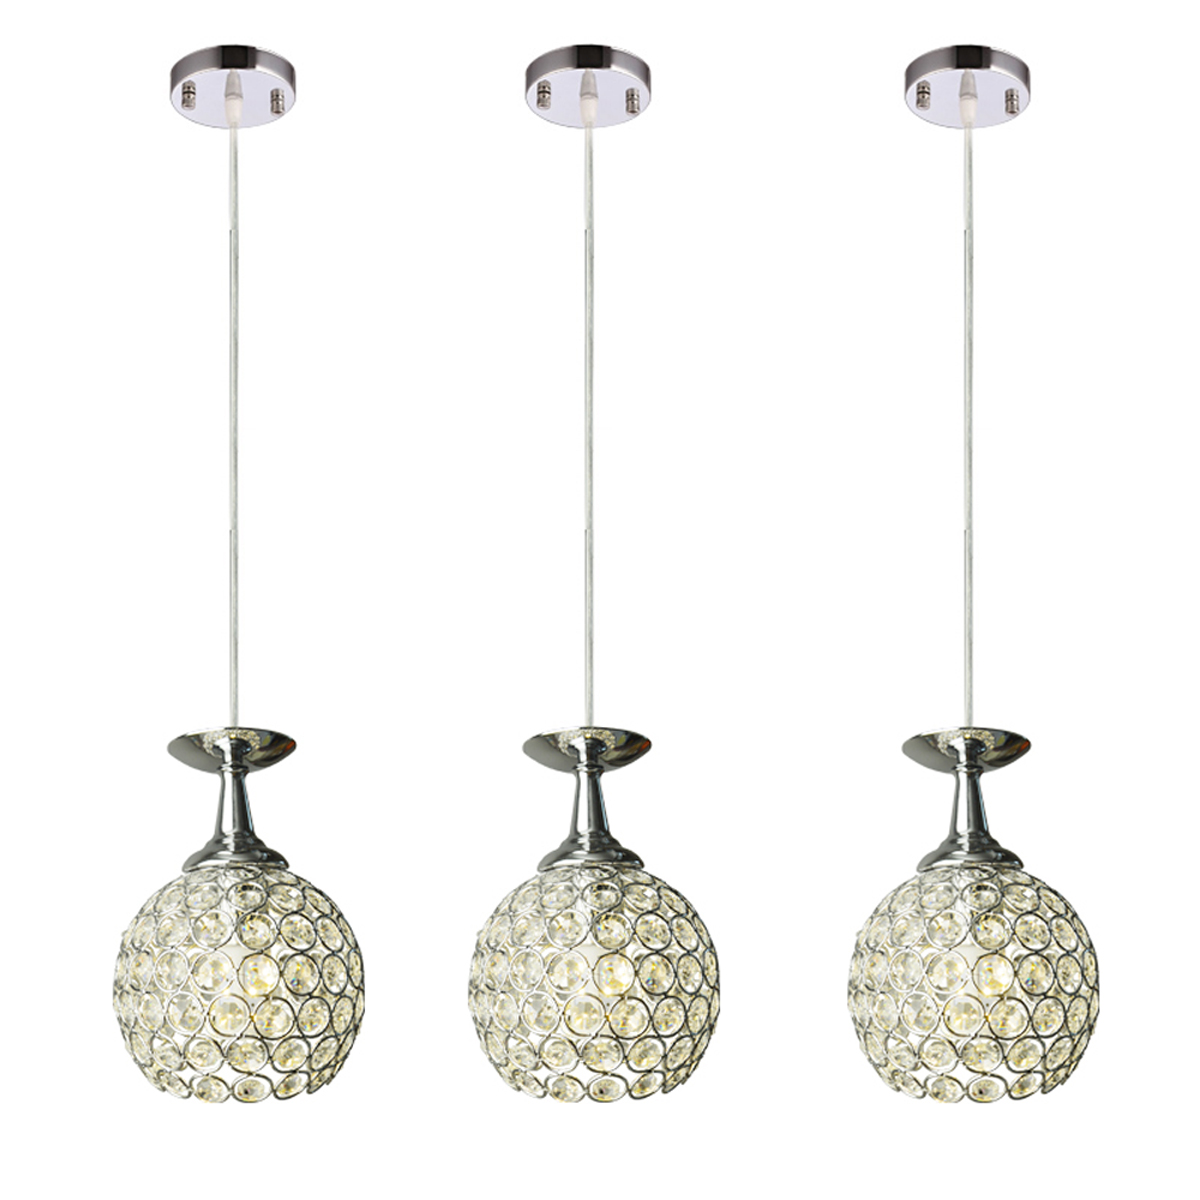 3 Light Hanging Ceiling Pendant Lamp Fixture Bar Lamp